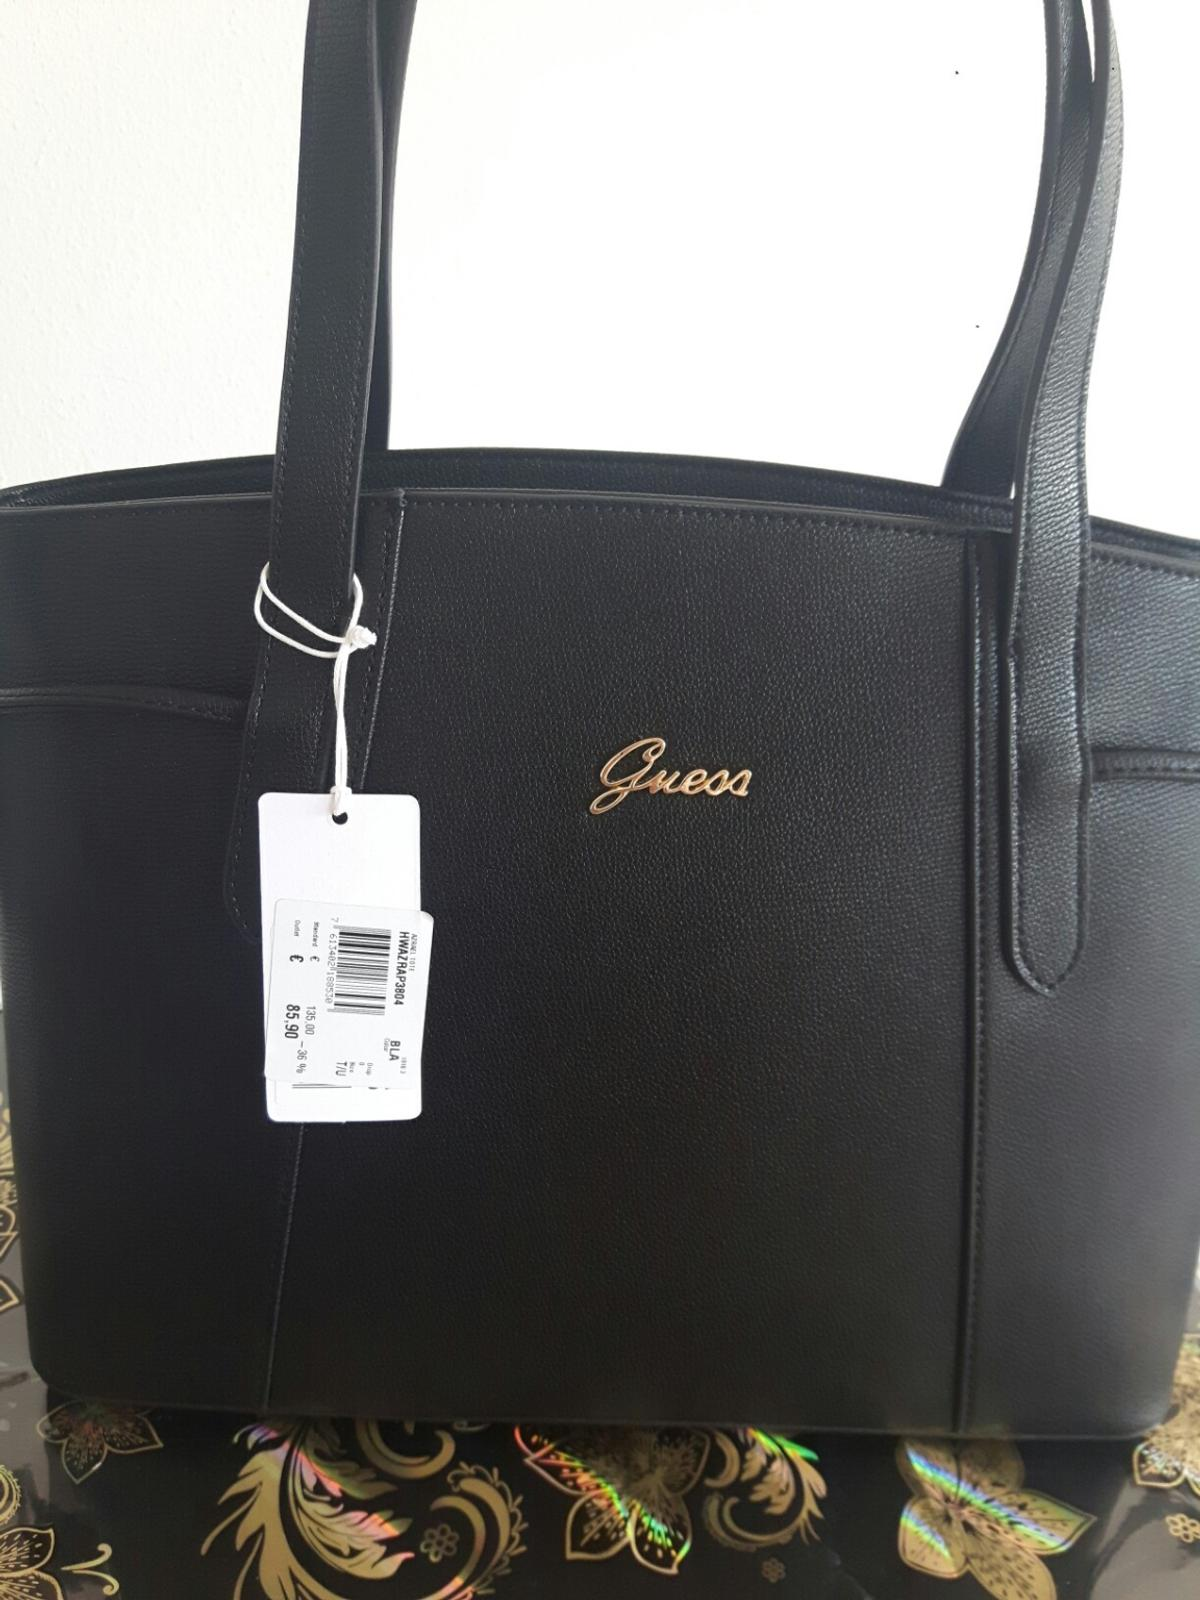 63e7f4d8c8198 GUESS Damen Tasche in 5020 Зальцбург for €60.00 for sale - Shpock